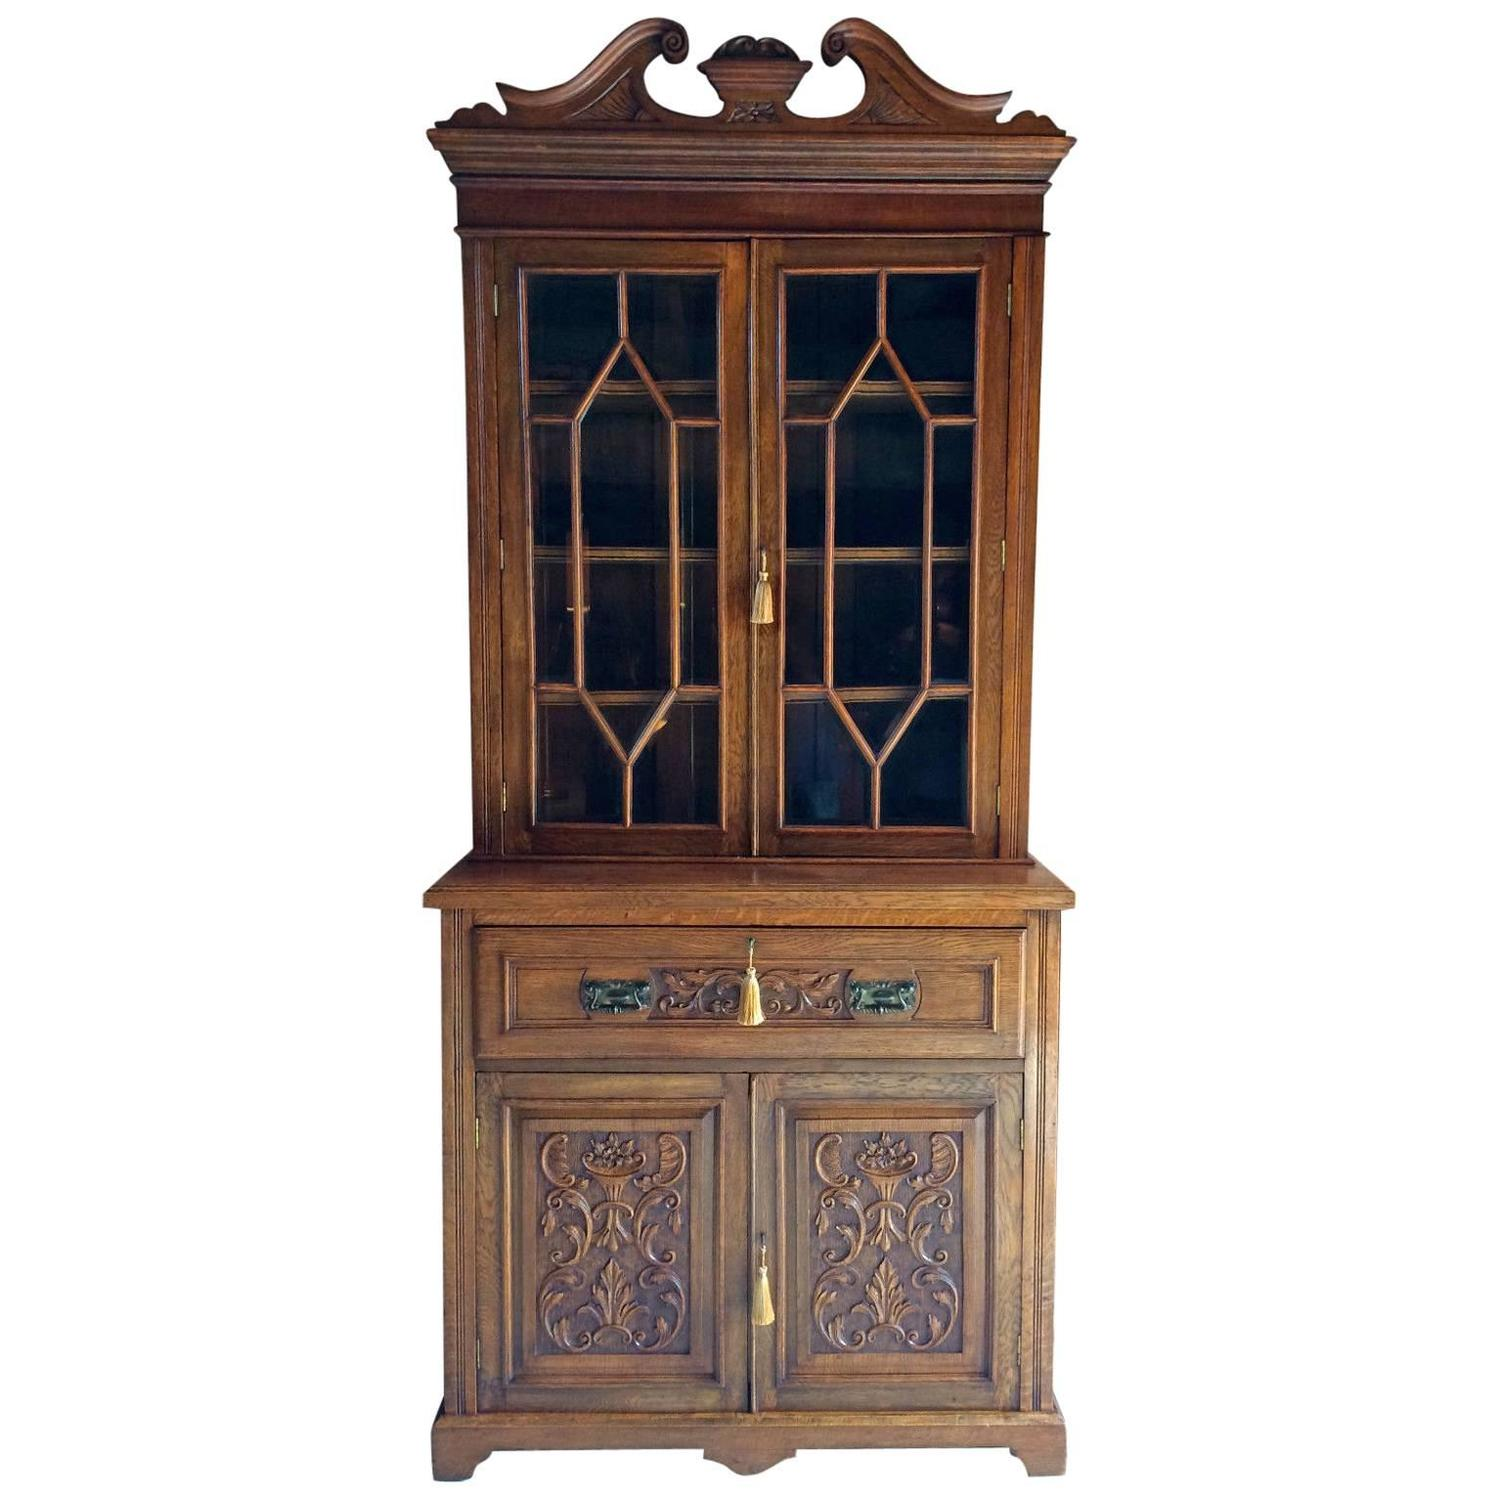 antique bookcase secretaire writing bureau edwardian solid golden oak at 1stdibs. Black Bedroom Furniture Sets. Home Design Ideas